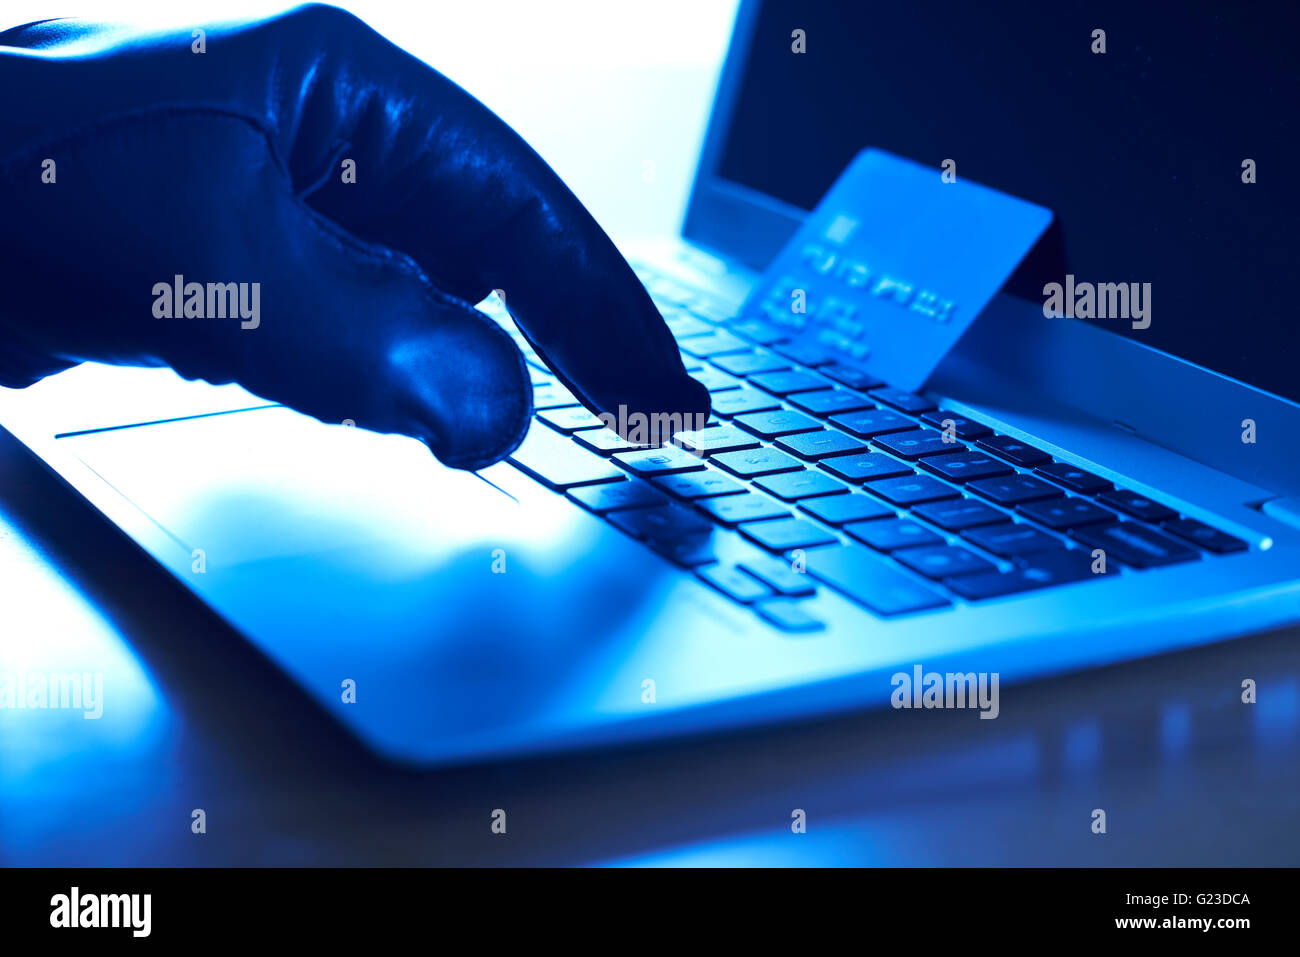 Cyber Criminal With Stolen Credit Card And Laptop - Stock Image